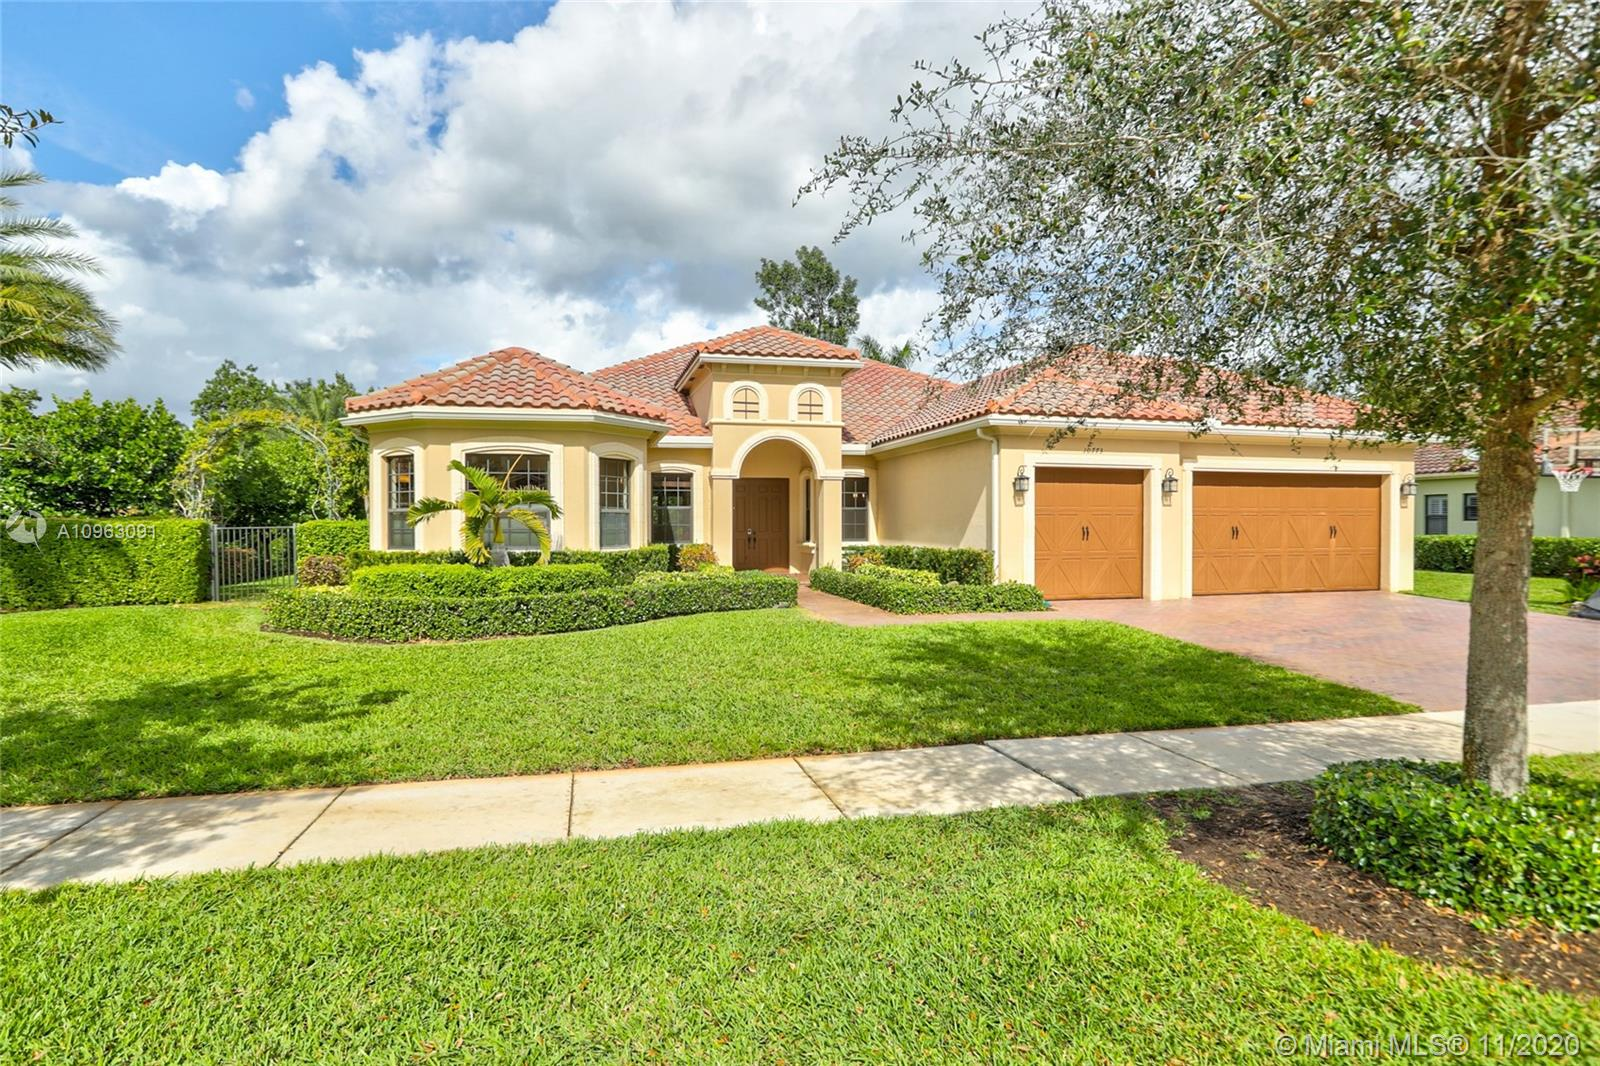 Beautiful estate home in highly desired Cooper City.  Home features 5 bedrooms, 3 baths with tile floors throughout.  Newly painted and completely turn-key, home is literally move-in ready.  Backyard is great for entertaining, featuring a custom Van Kirk pool and a fire pit.  Neighborhood is very quaint with only 20 homes, security gate at front.  All Cooper City A+ rated schools.  Call today for a showing!